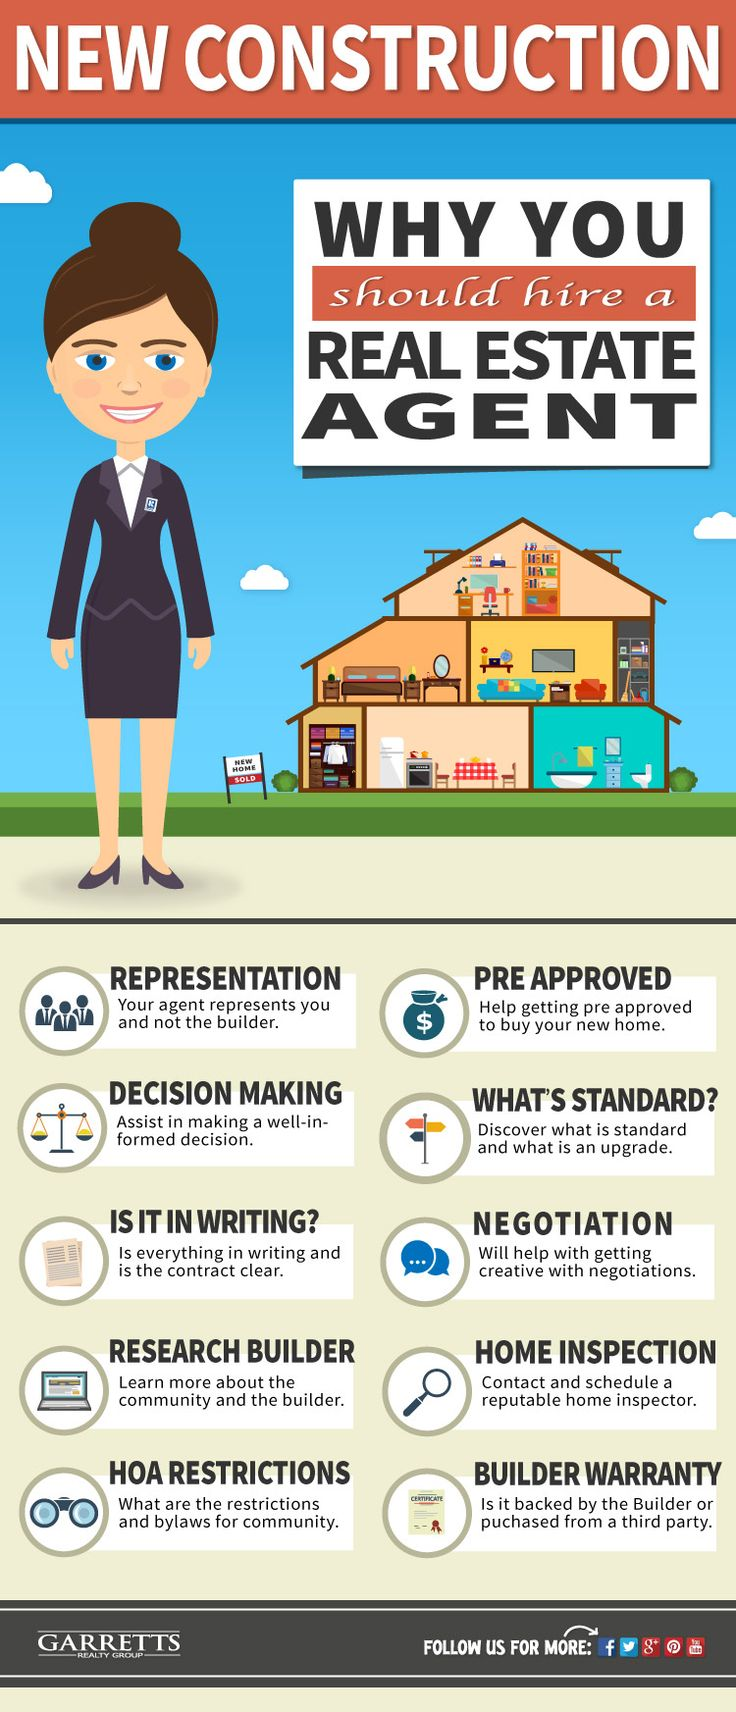 Thinking about building a new home? Learn why it may be in your best interest to hire a real estate agent when buying a new construction home.